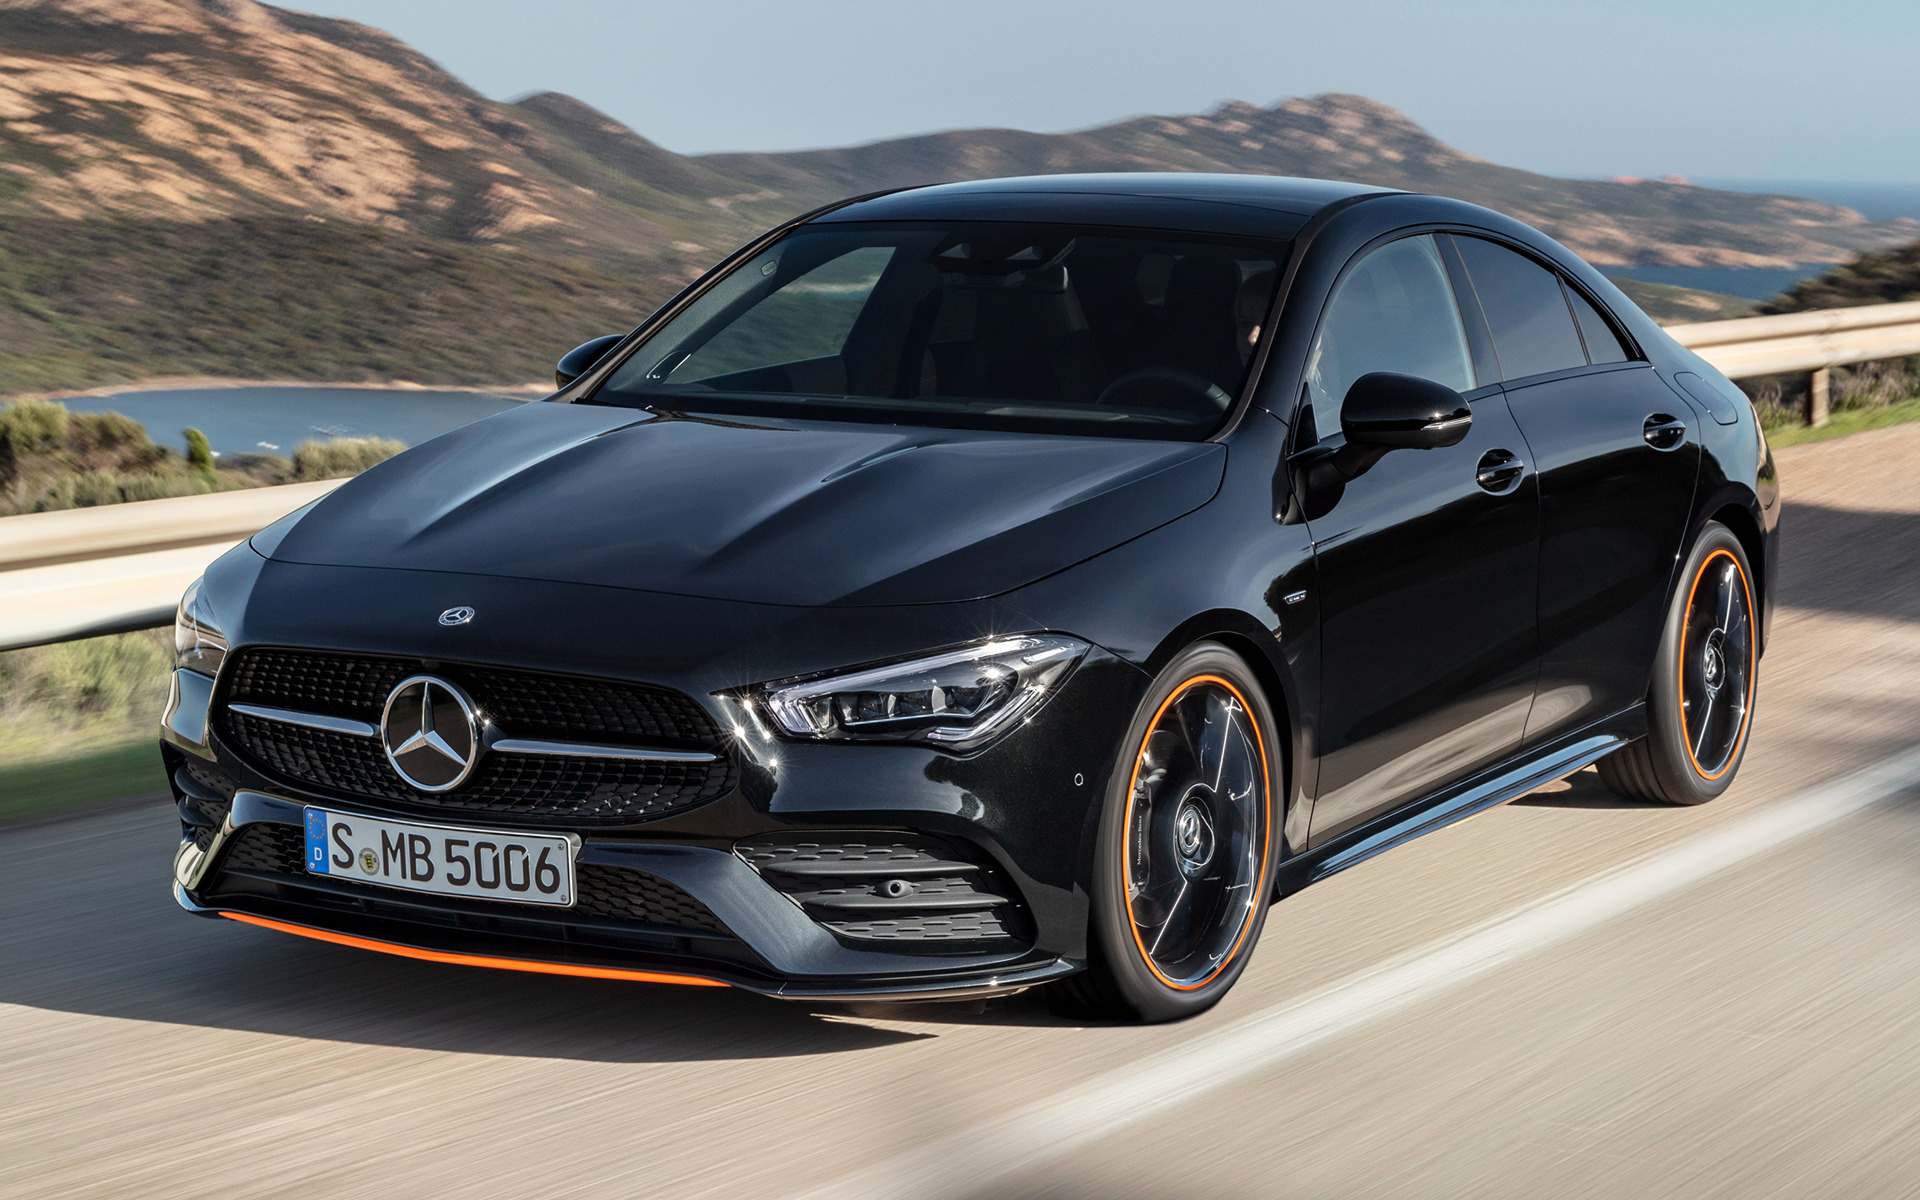 2019 mercedes benz cla class orangeart edition wallpapers and hd images car pixel. Black Bedroom Furniture Sets. Home Design Ideas